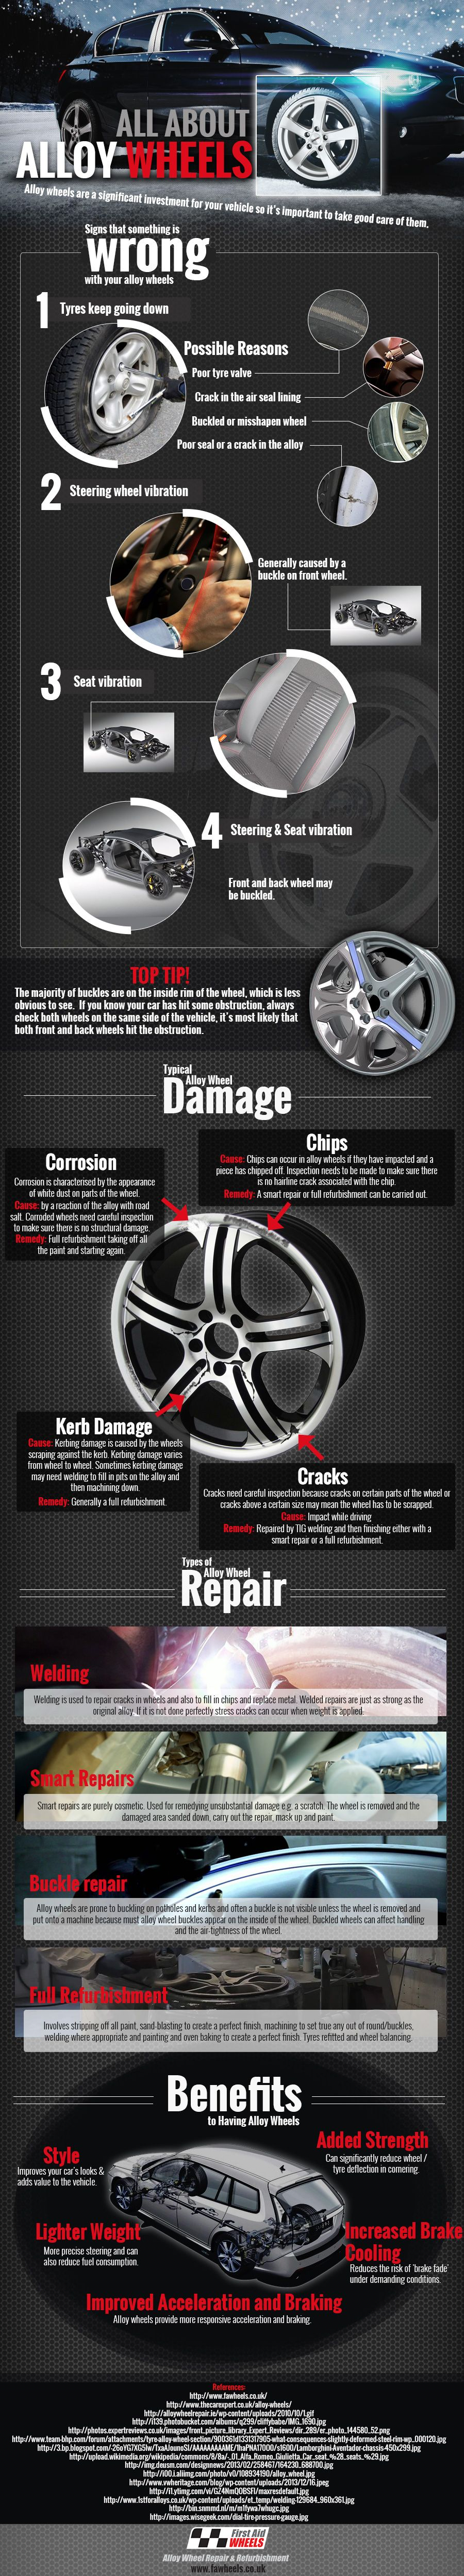 All About Alloy Wheels